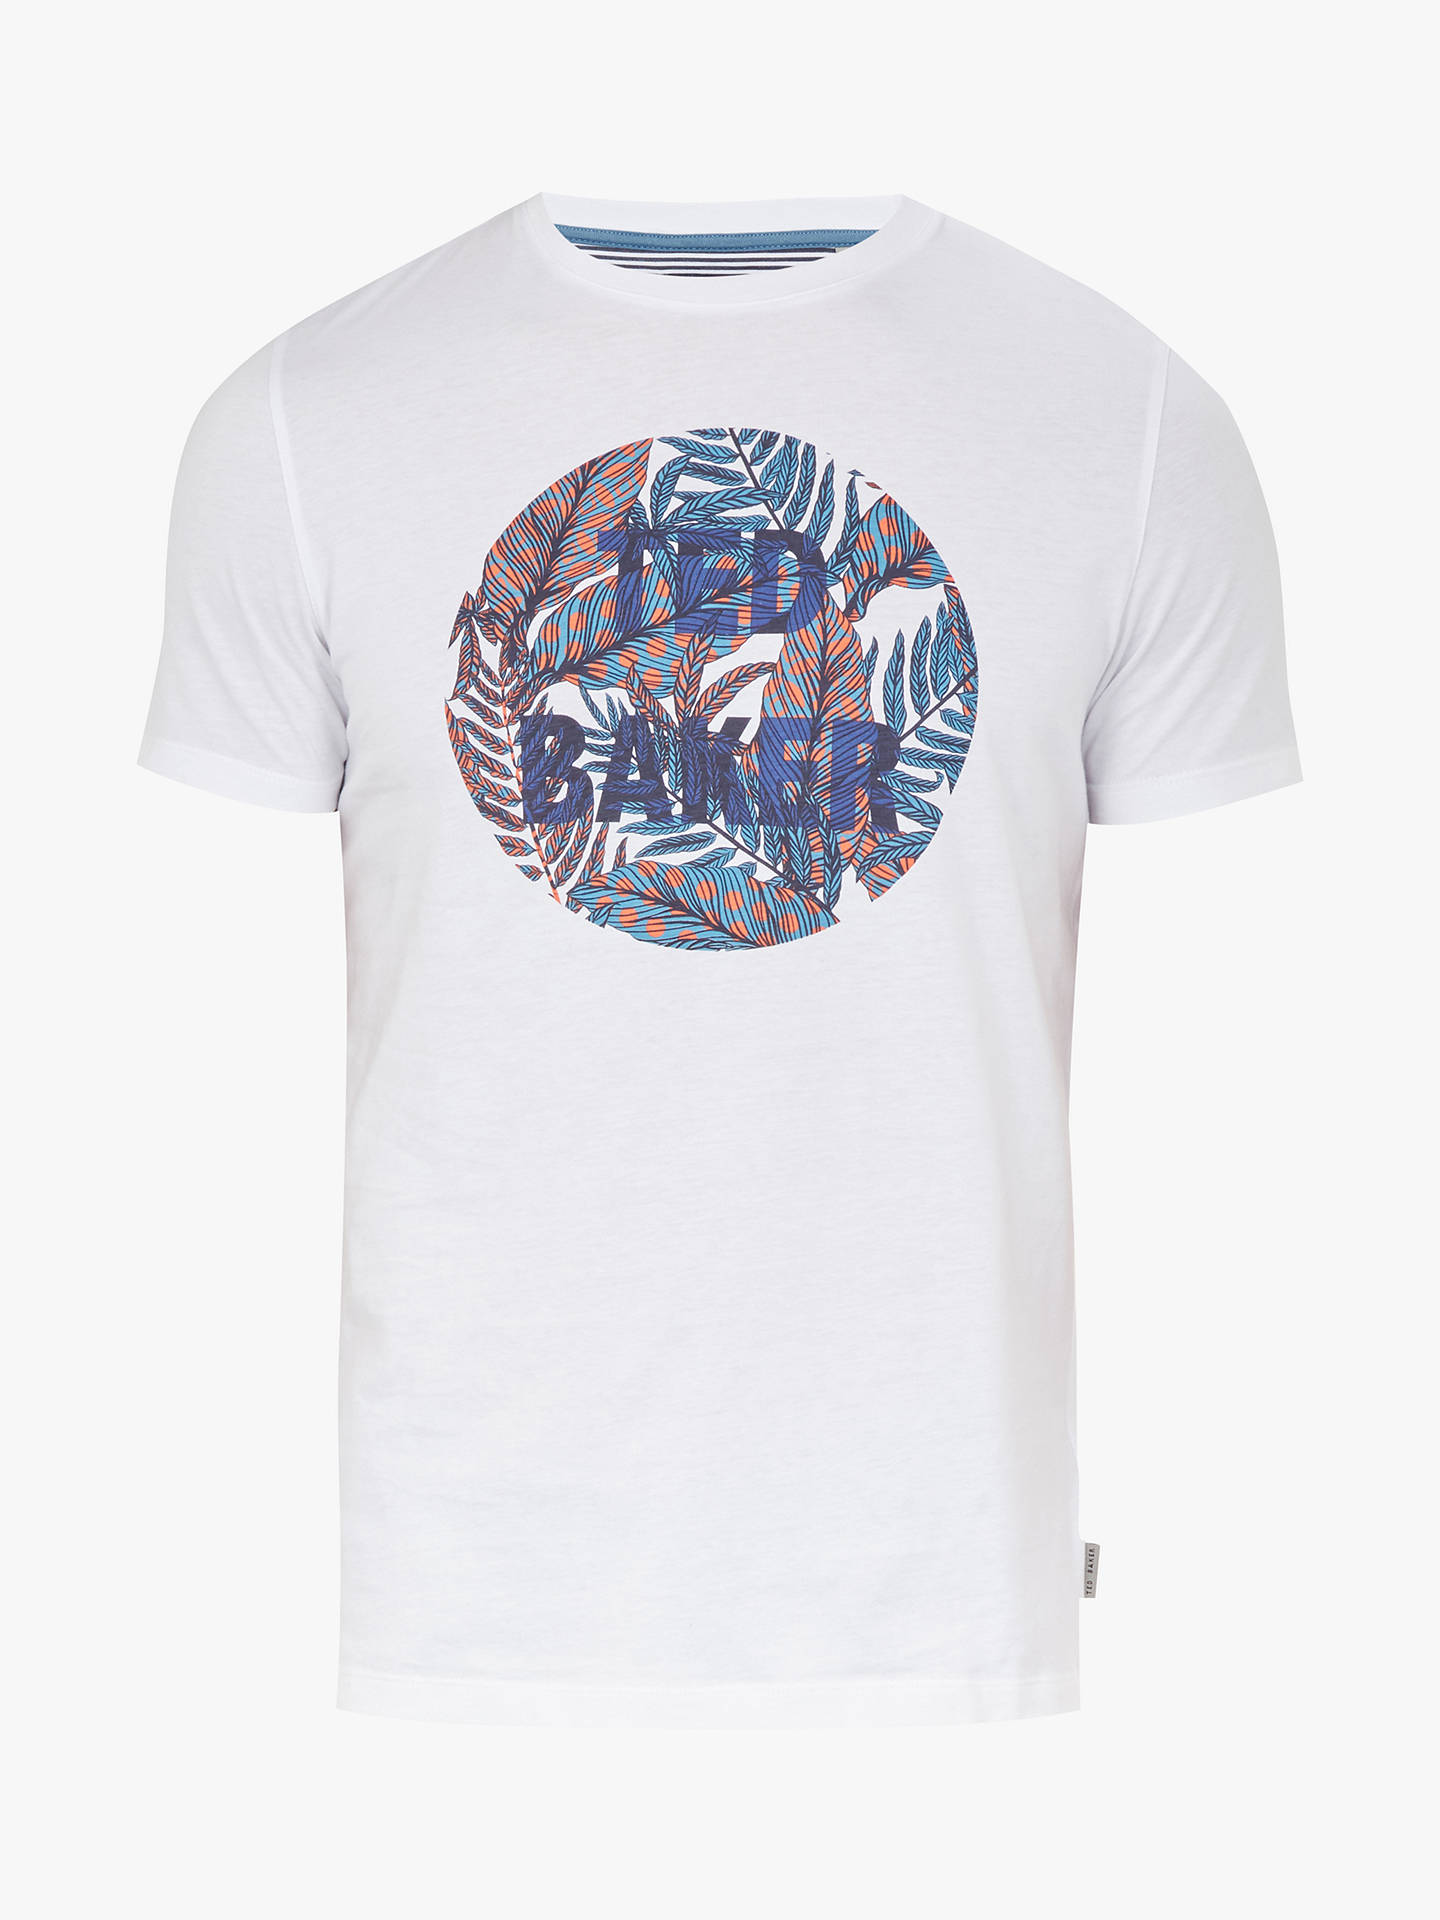 Buy Ted Baker Deelo Graphic T-Shirt, White, XXXL Online at johnlewis.com